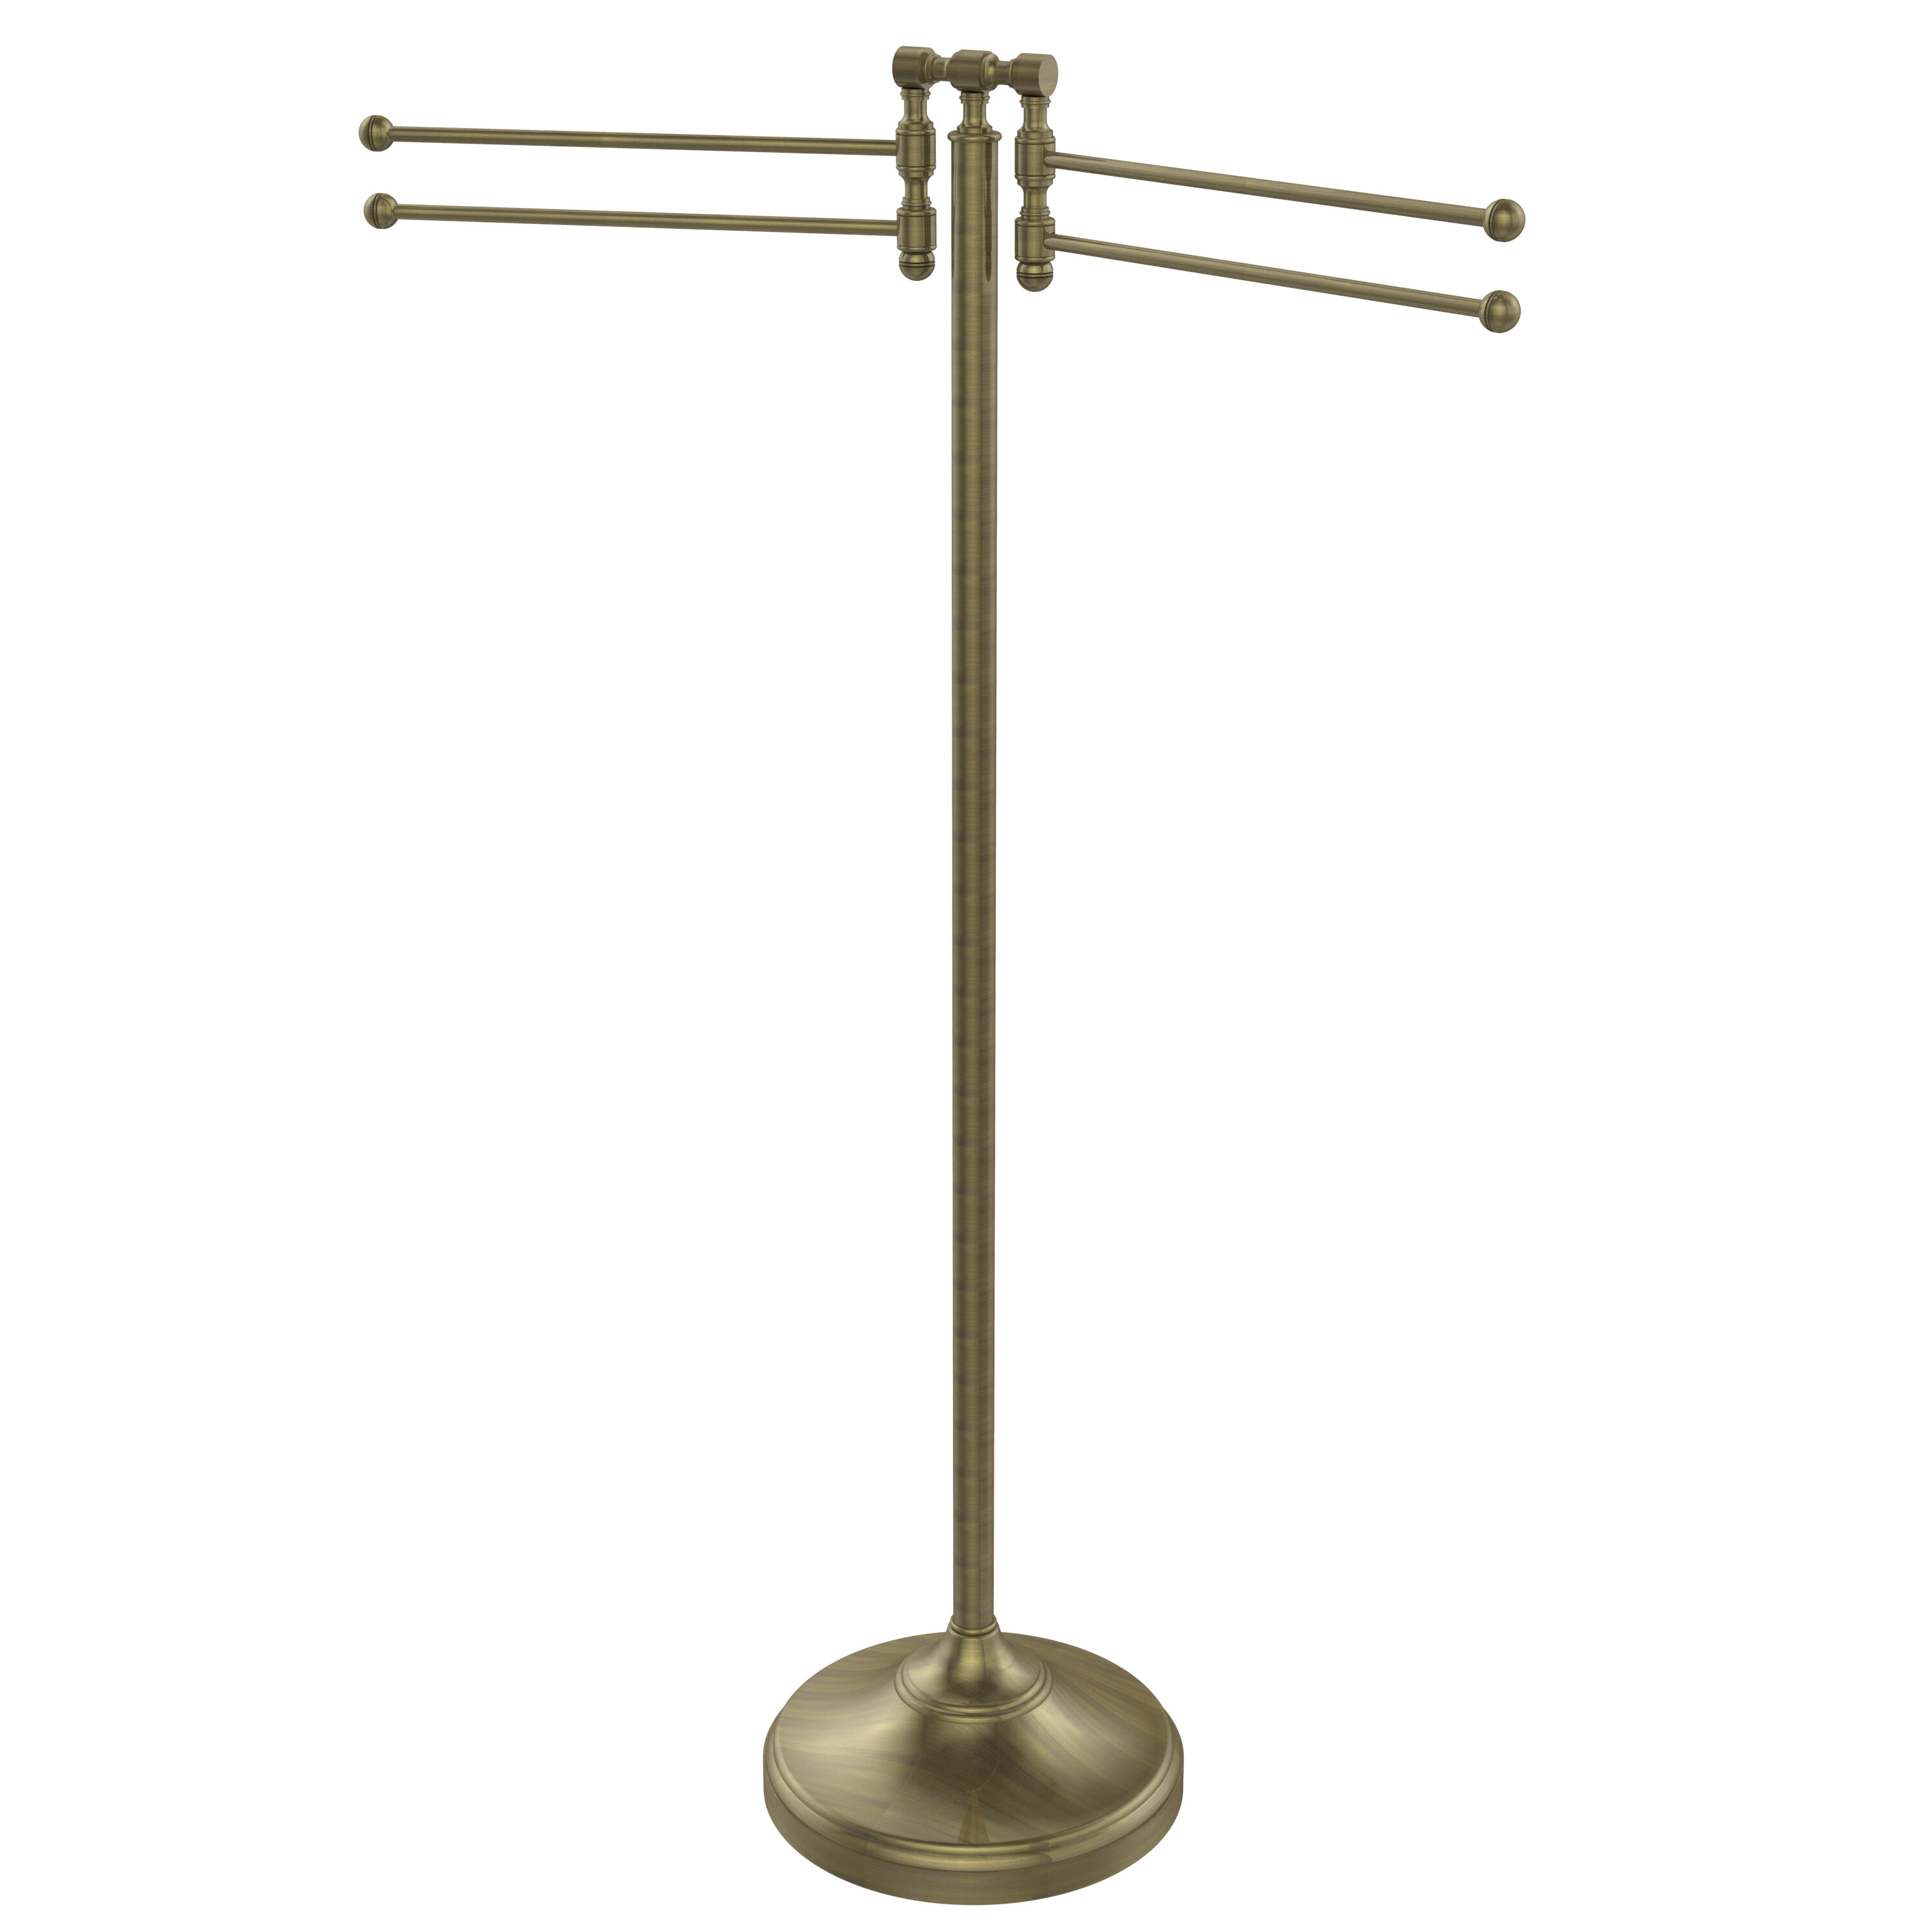 Free Standing Unlacquered Brass Towel Bars Racks And Stands You Ll Love In 2021 Wayfair